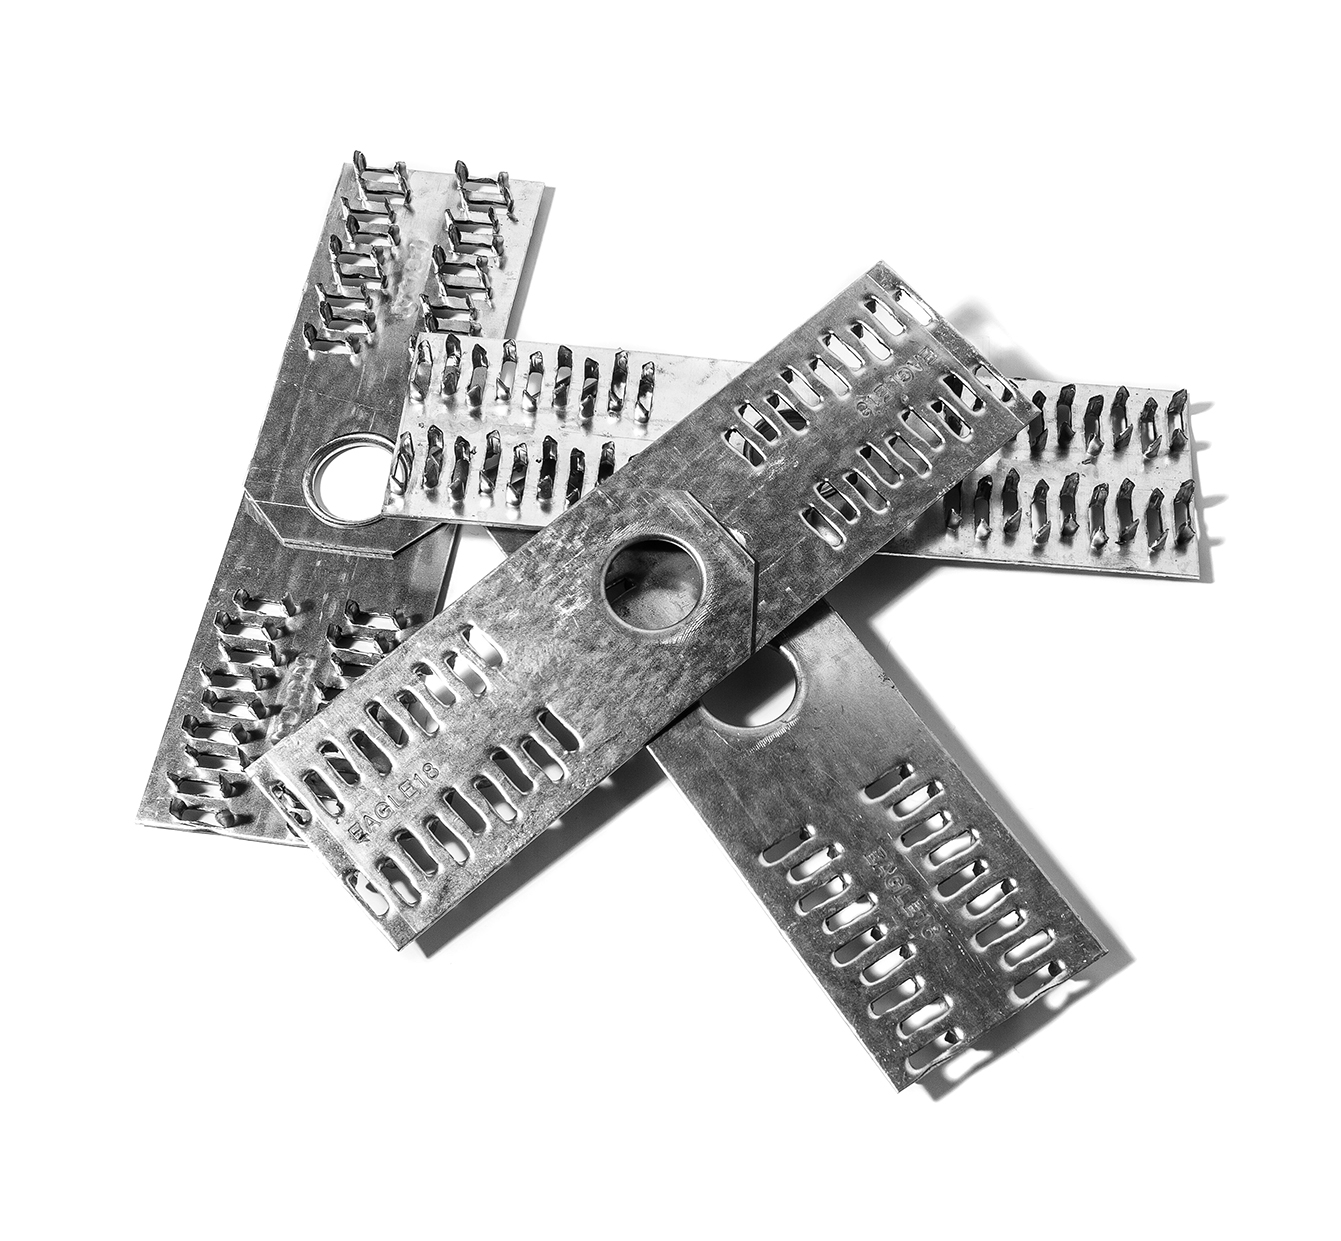 hinge connector products